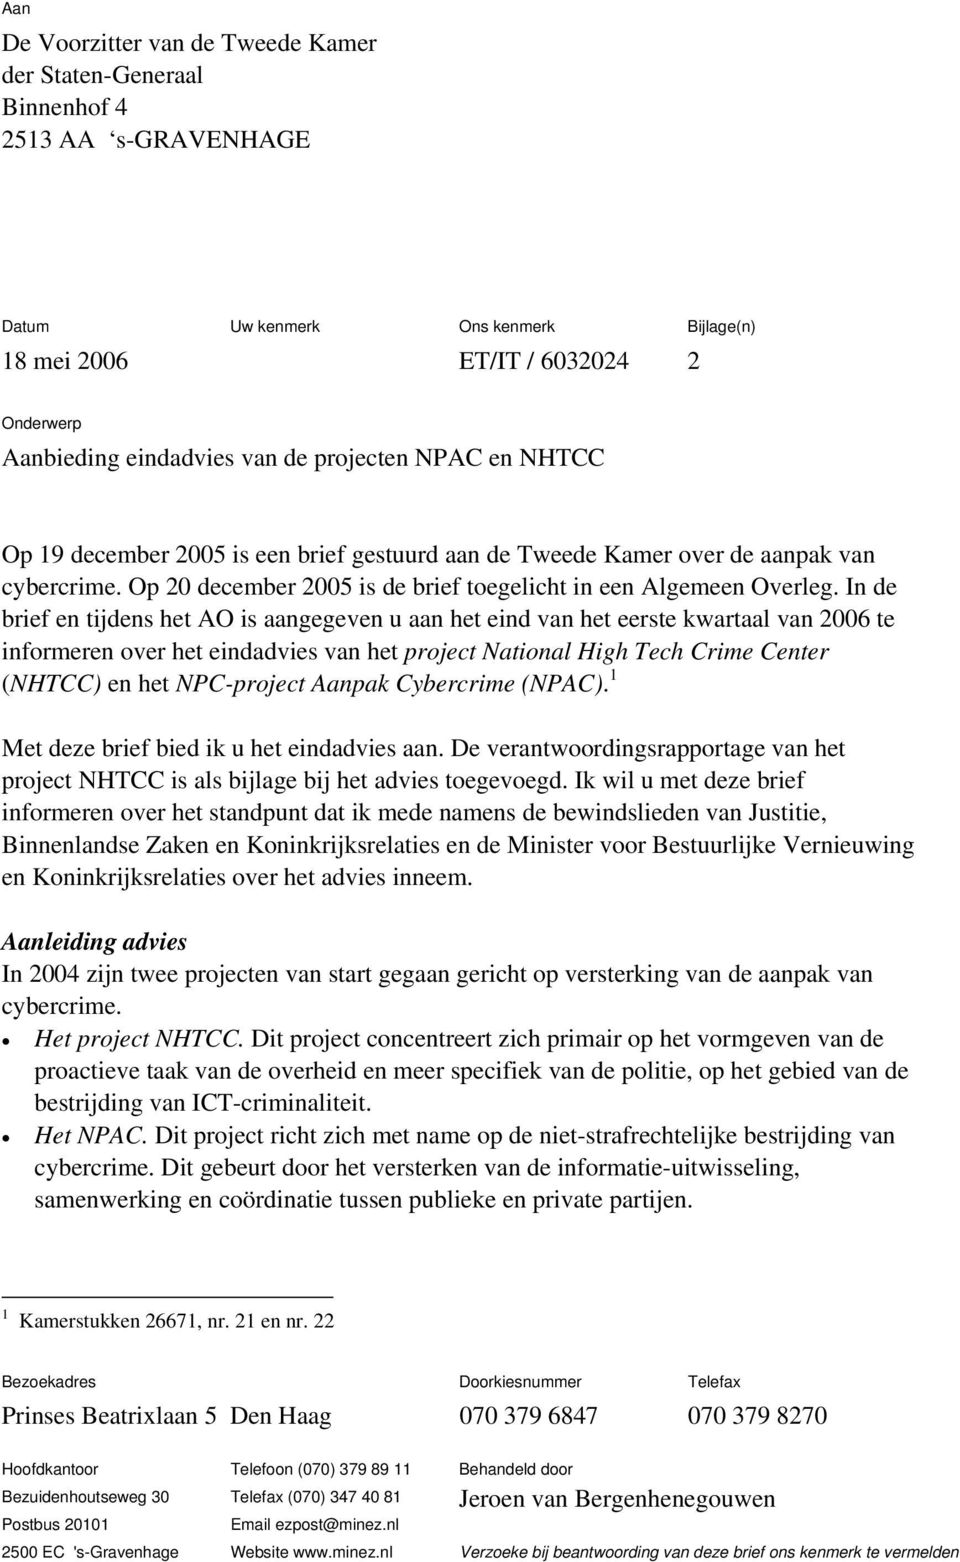 In de brief en tijdens het AO is aangegeven u aan het eind van het eerste kwartaal van 2006 te informeren over het eindadvies van het project National High Tech Crime Center (NHTCC) en het